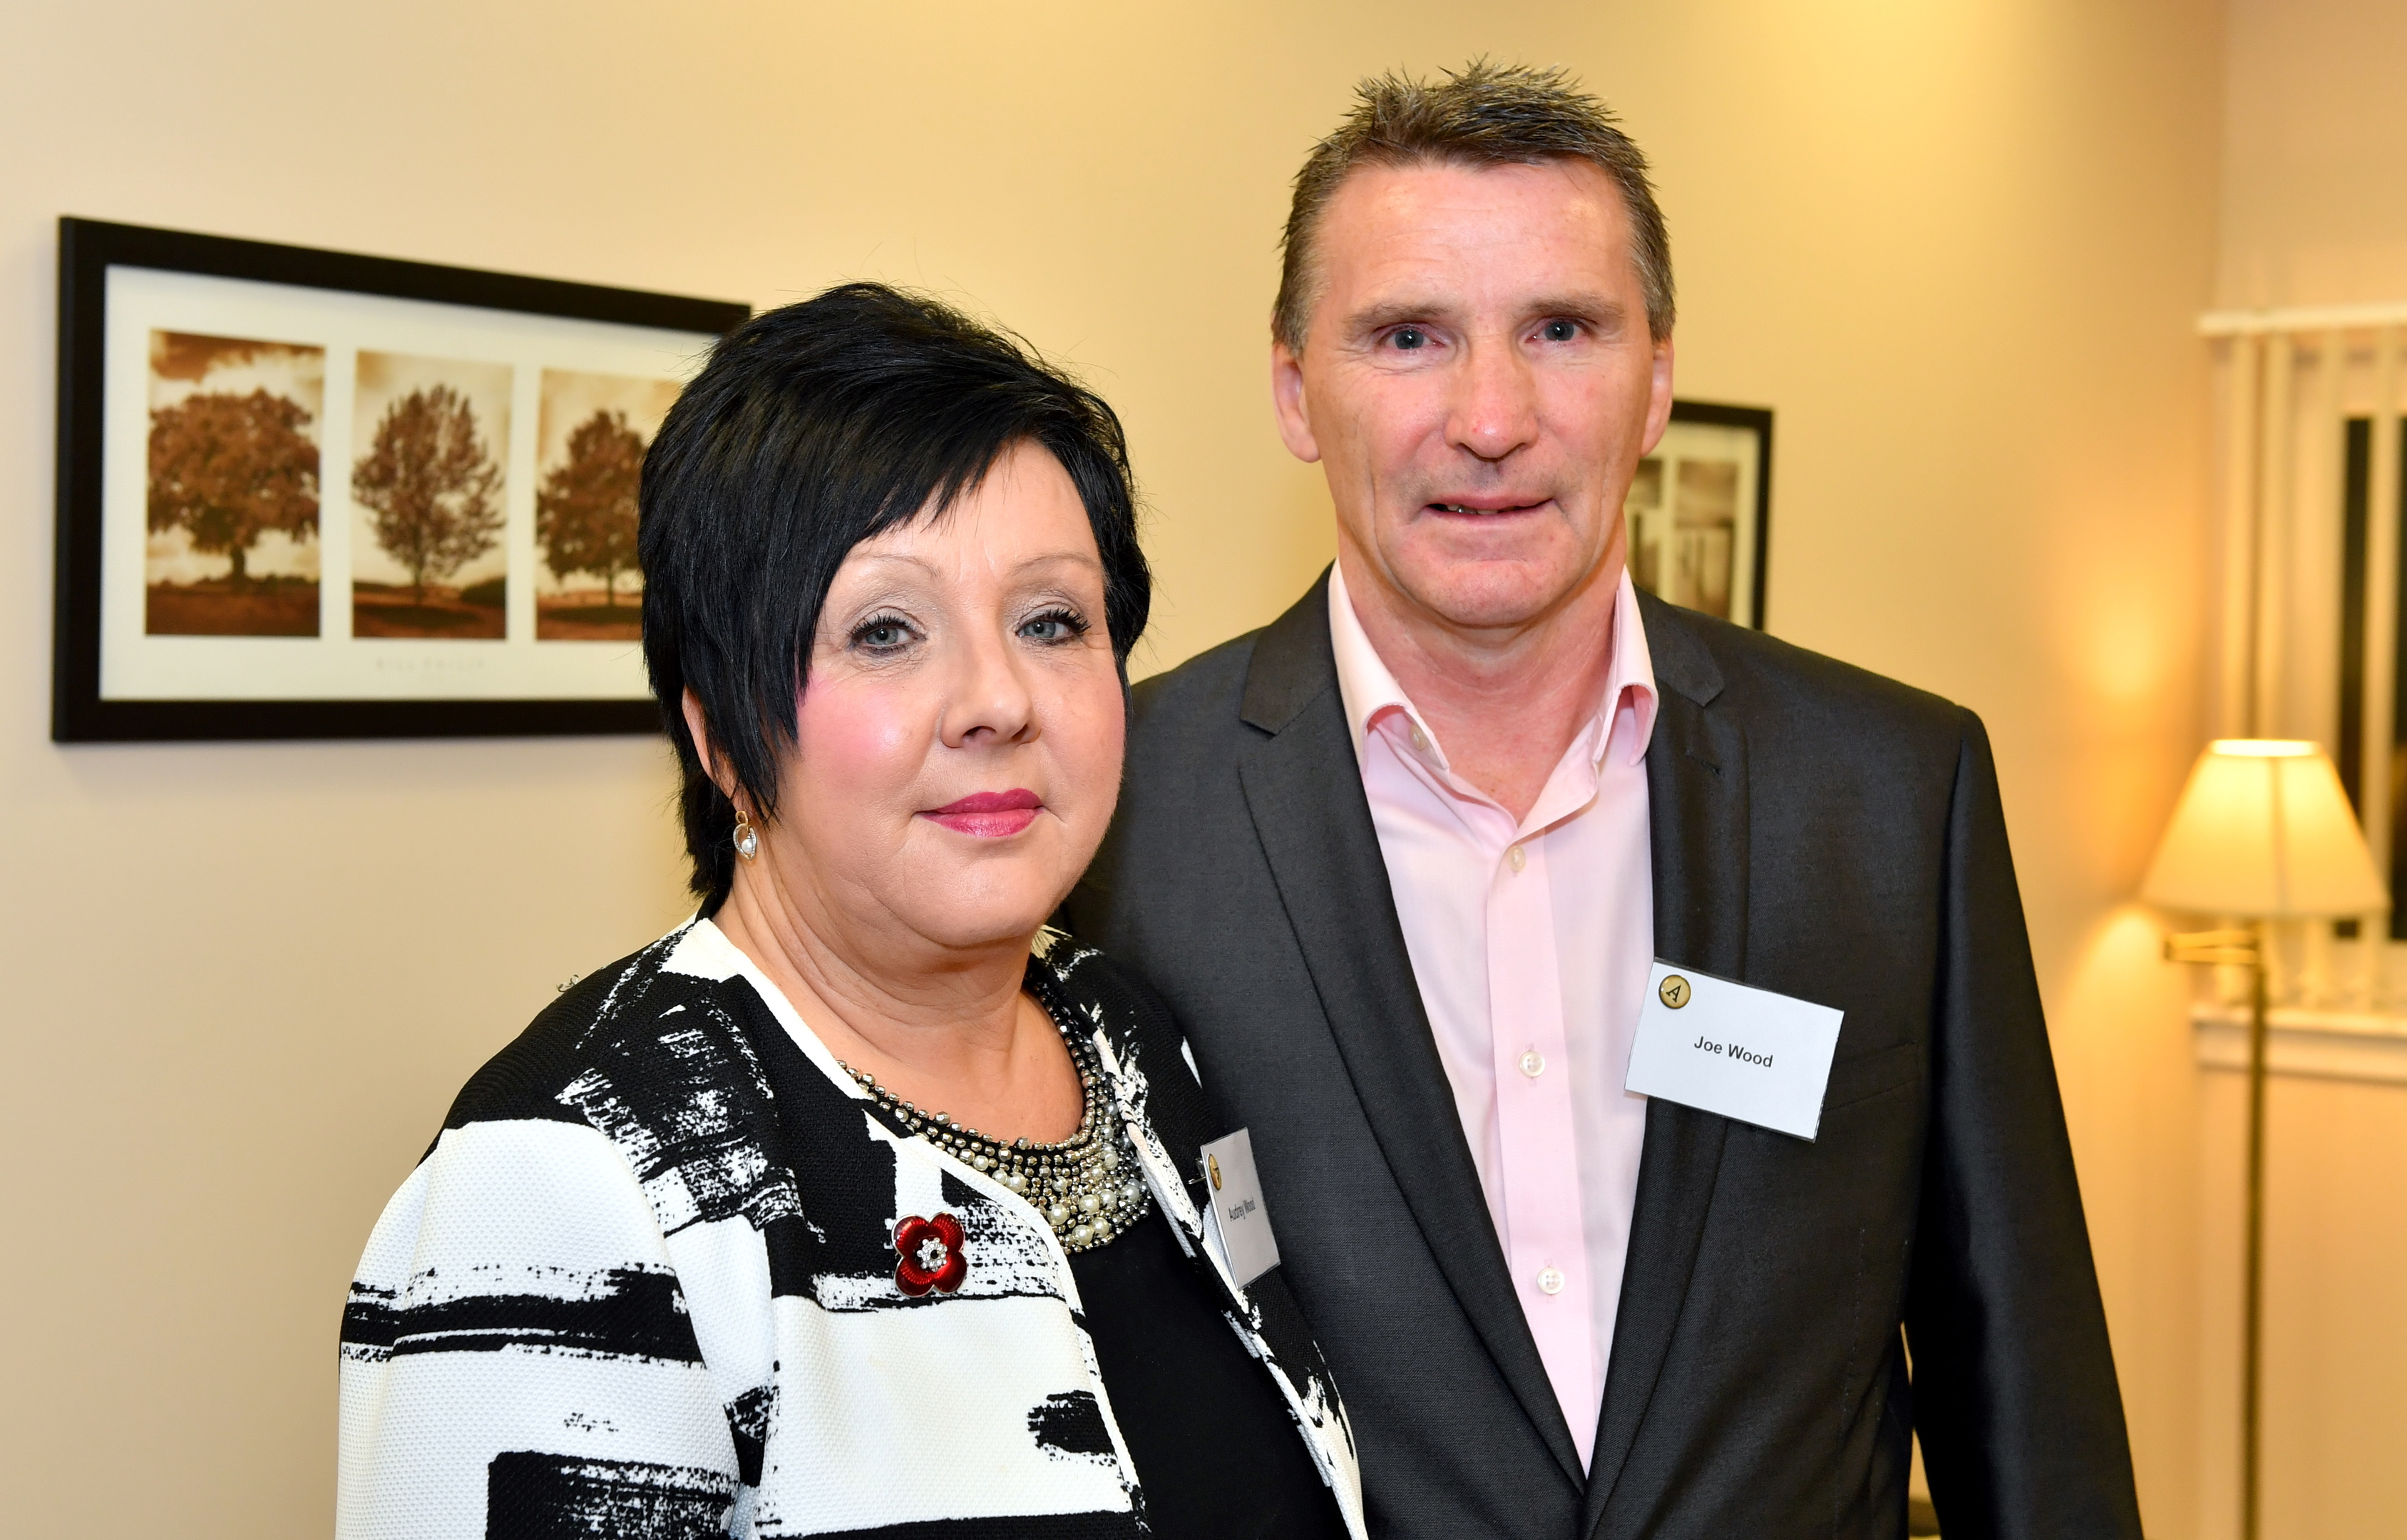 Audrey Wood and her husband, Joe, at the opening of Restrata's new office in Aberdeen on November 1.